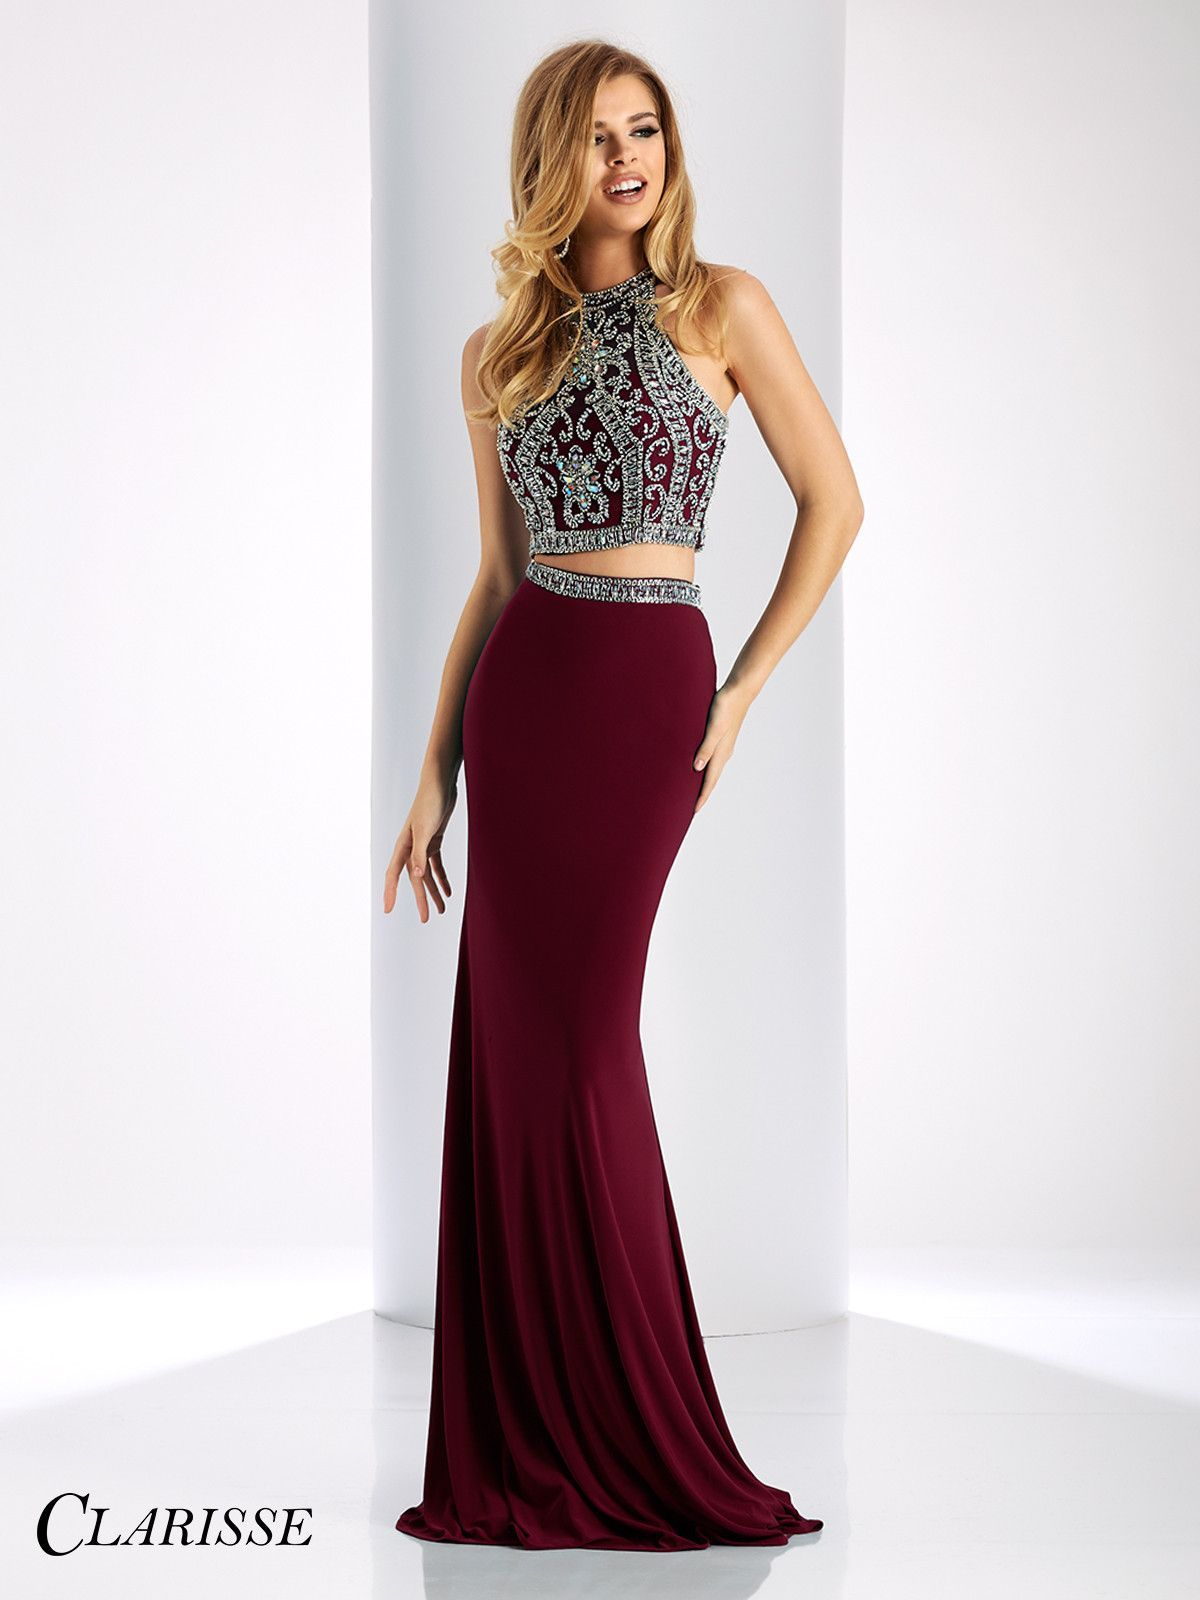 Clarisse Prom 3006 Marsala/Silver Two-Piece Prom Dress